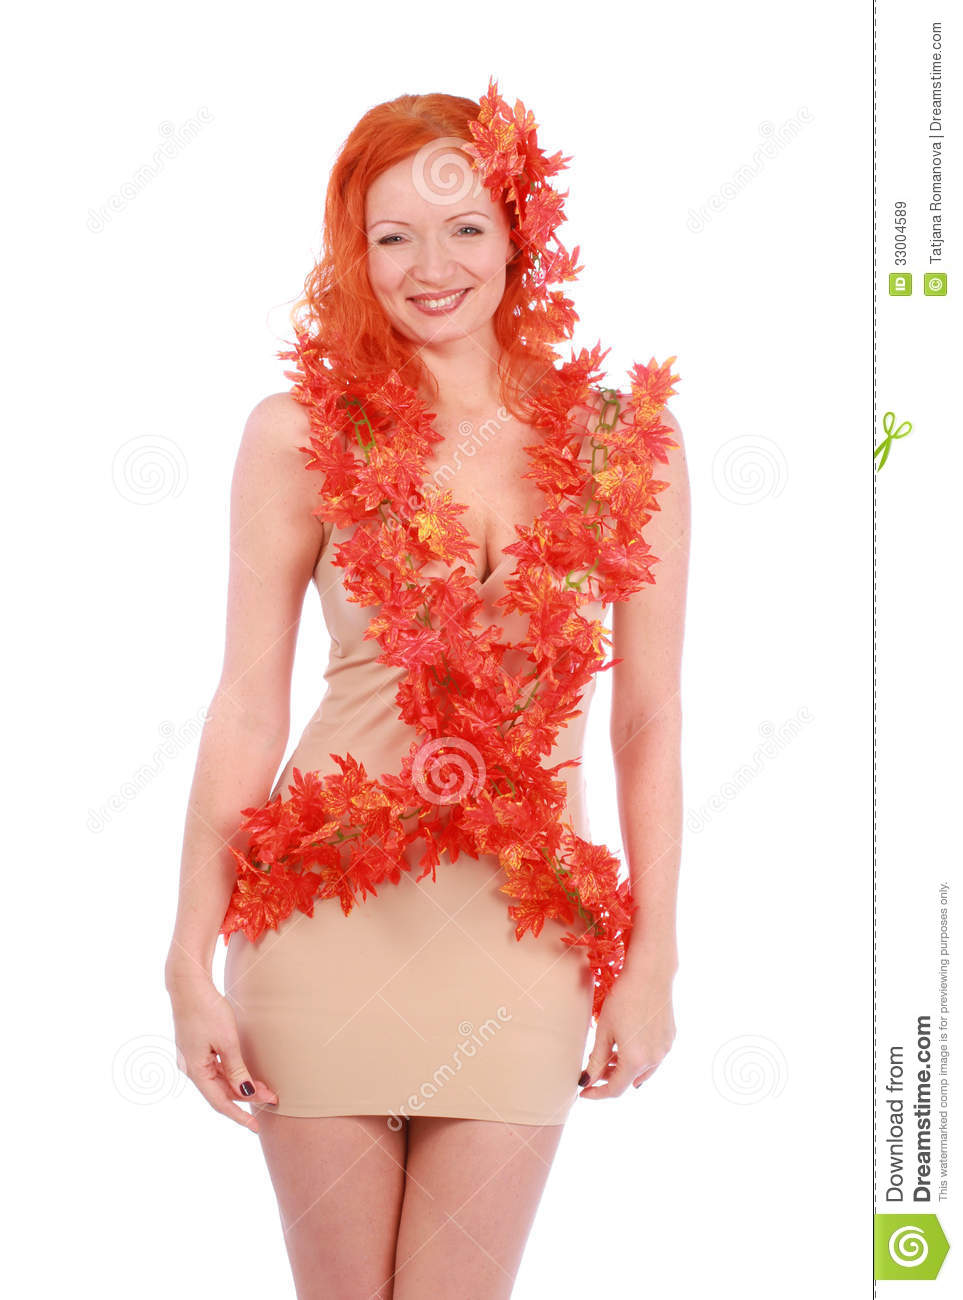 Creative shoot of smiling autumn young woman with red leaves